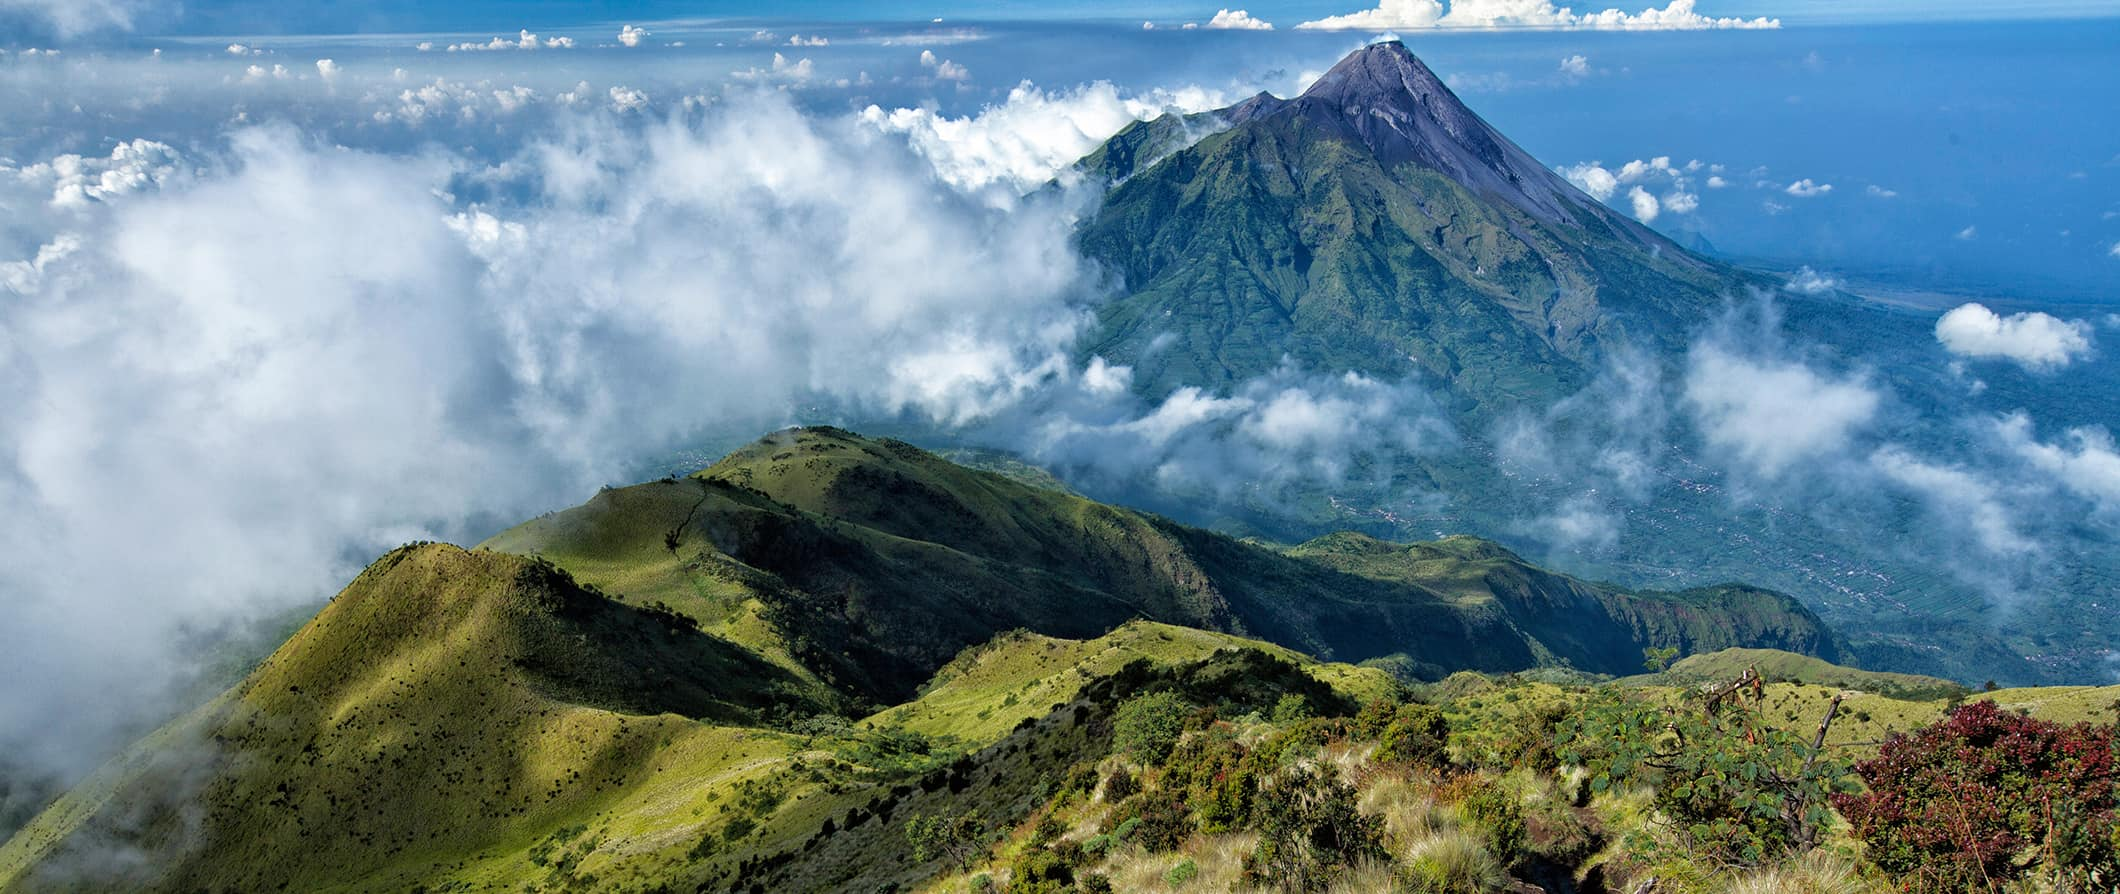 verdant mountains and volcanoes in Indonesia